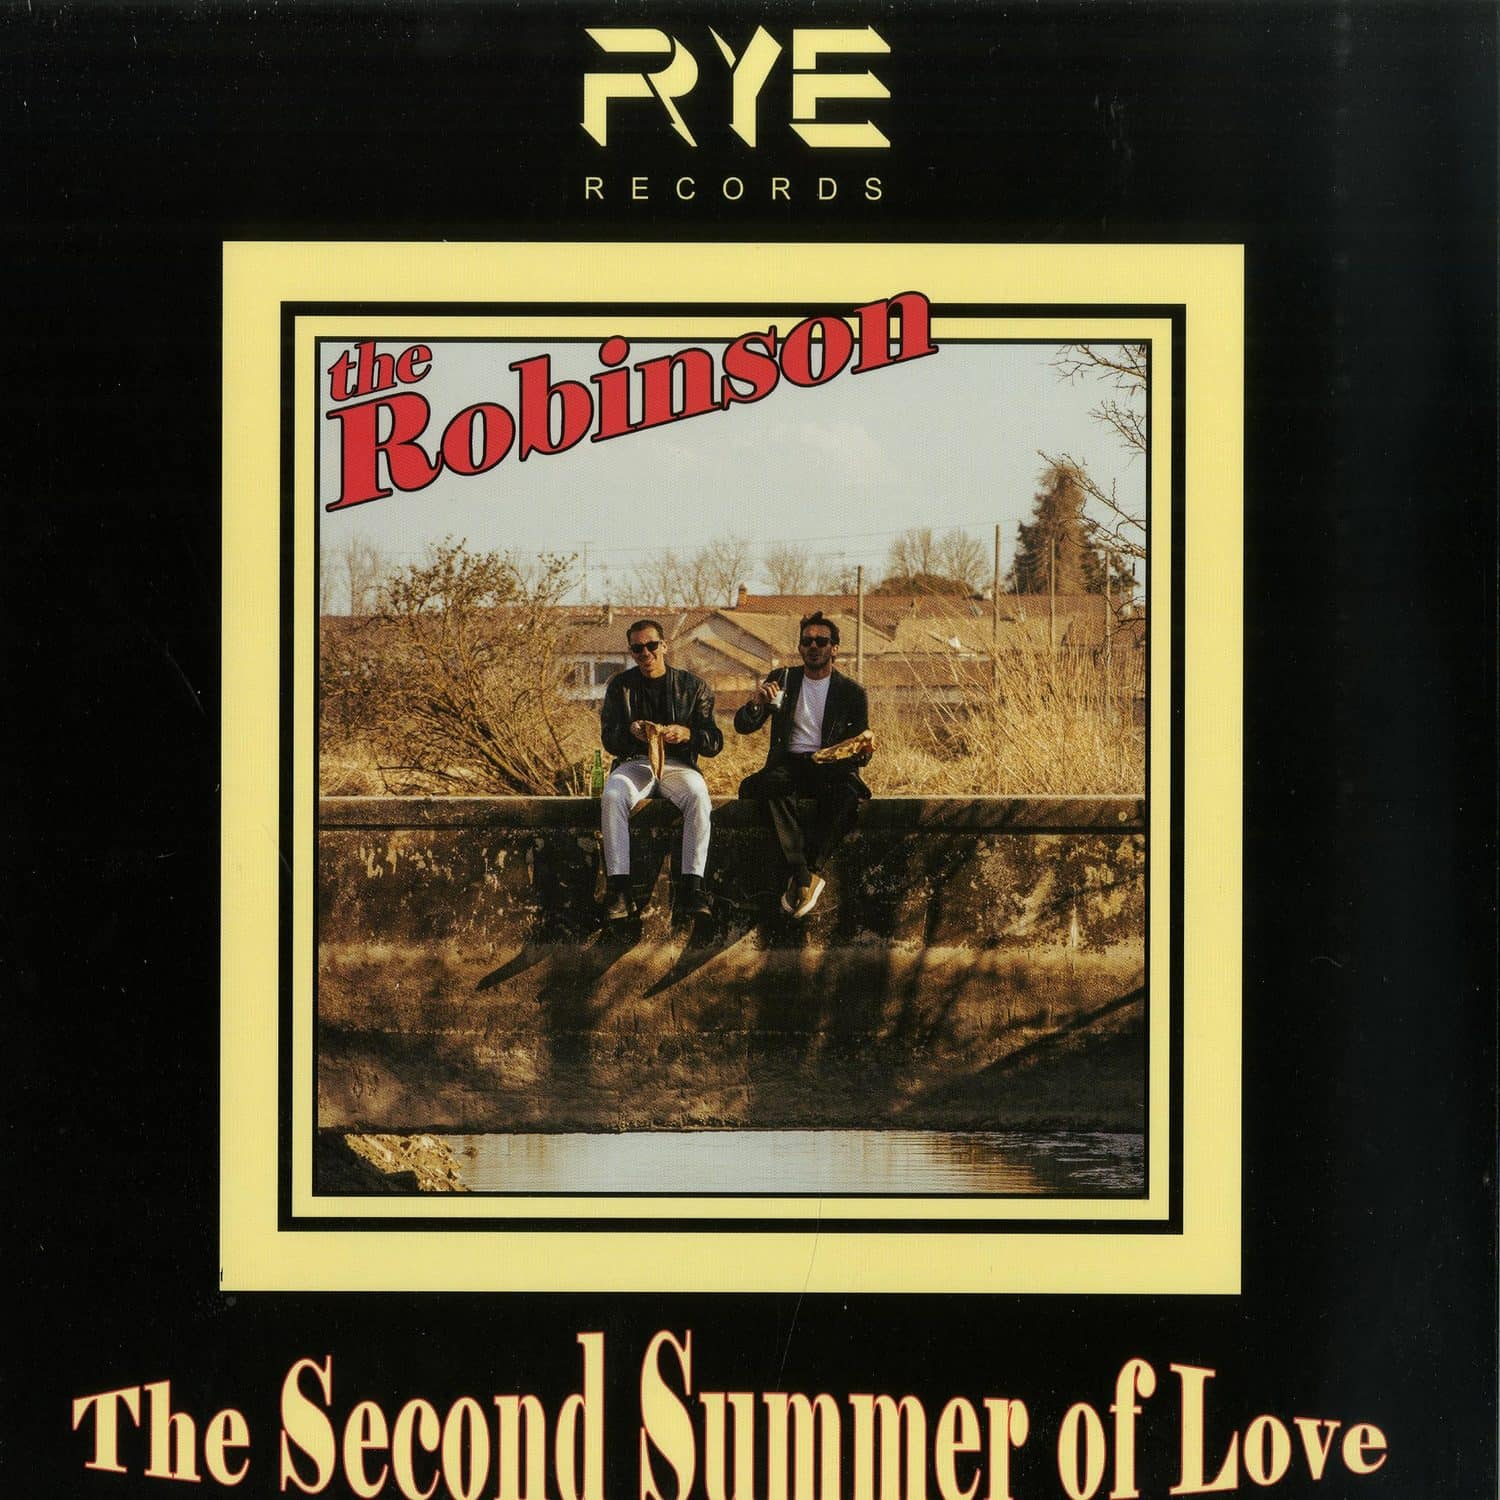 The Robinson - THE SECOND SUMMER OF LOVE